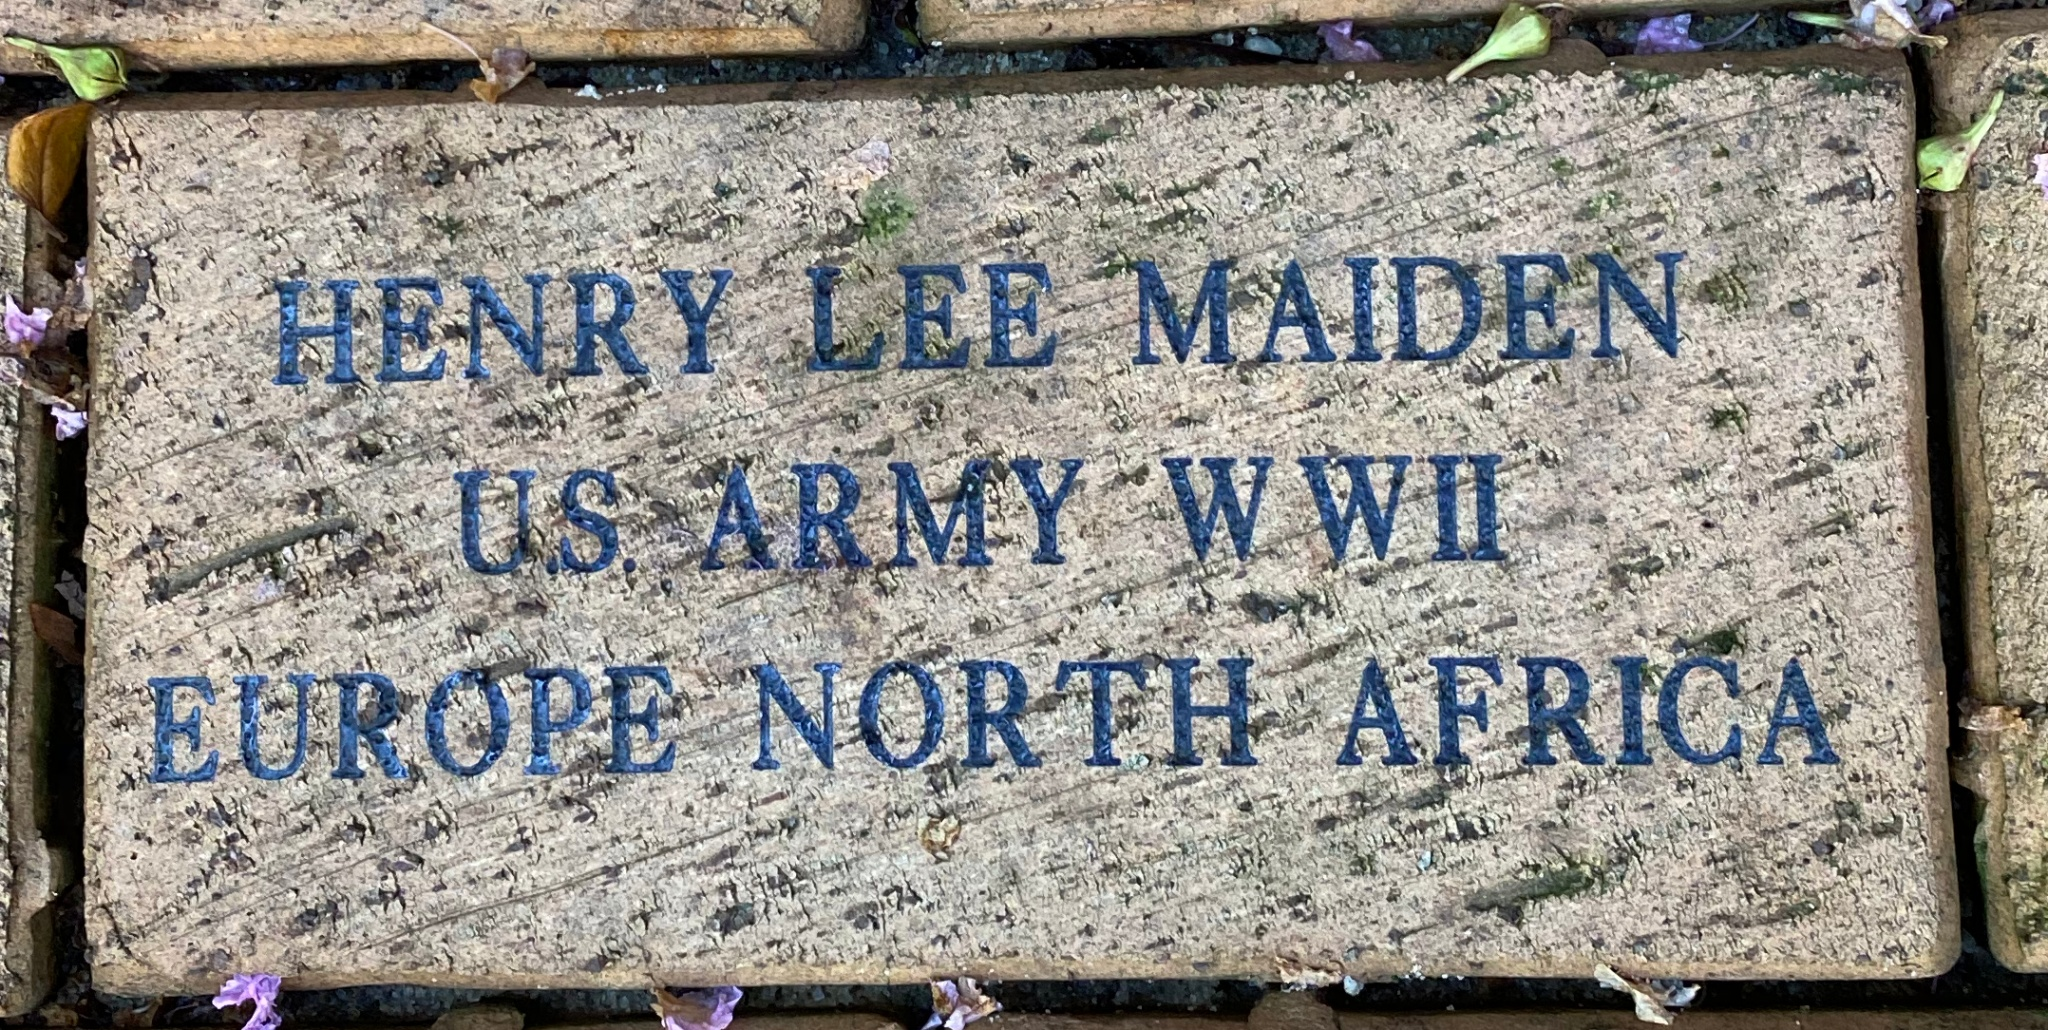 HENRY LEE MAIDEN US ARMY WWII EUROPE North Africa